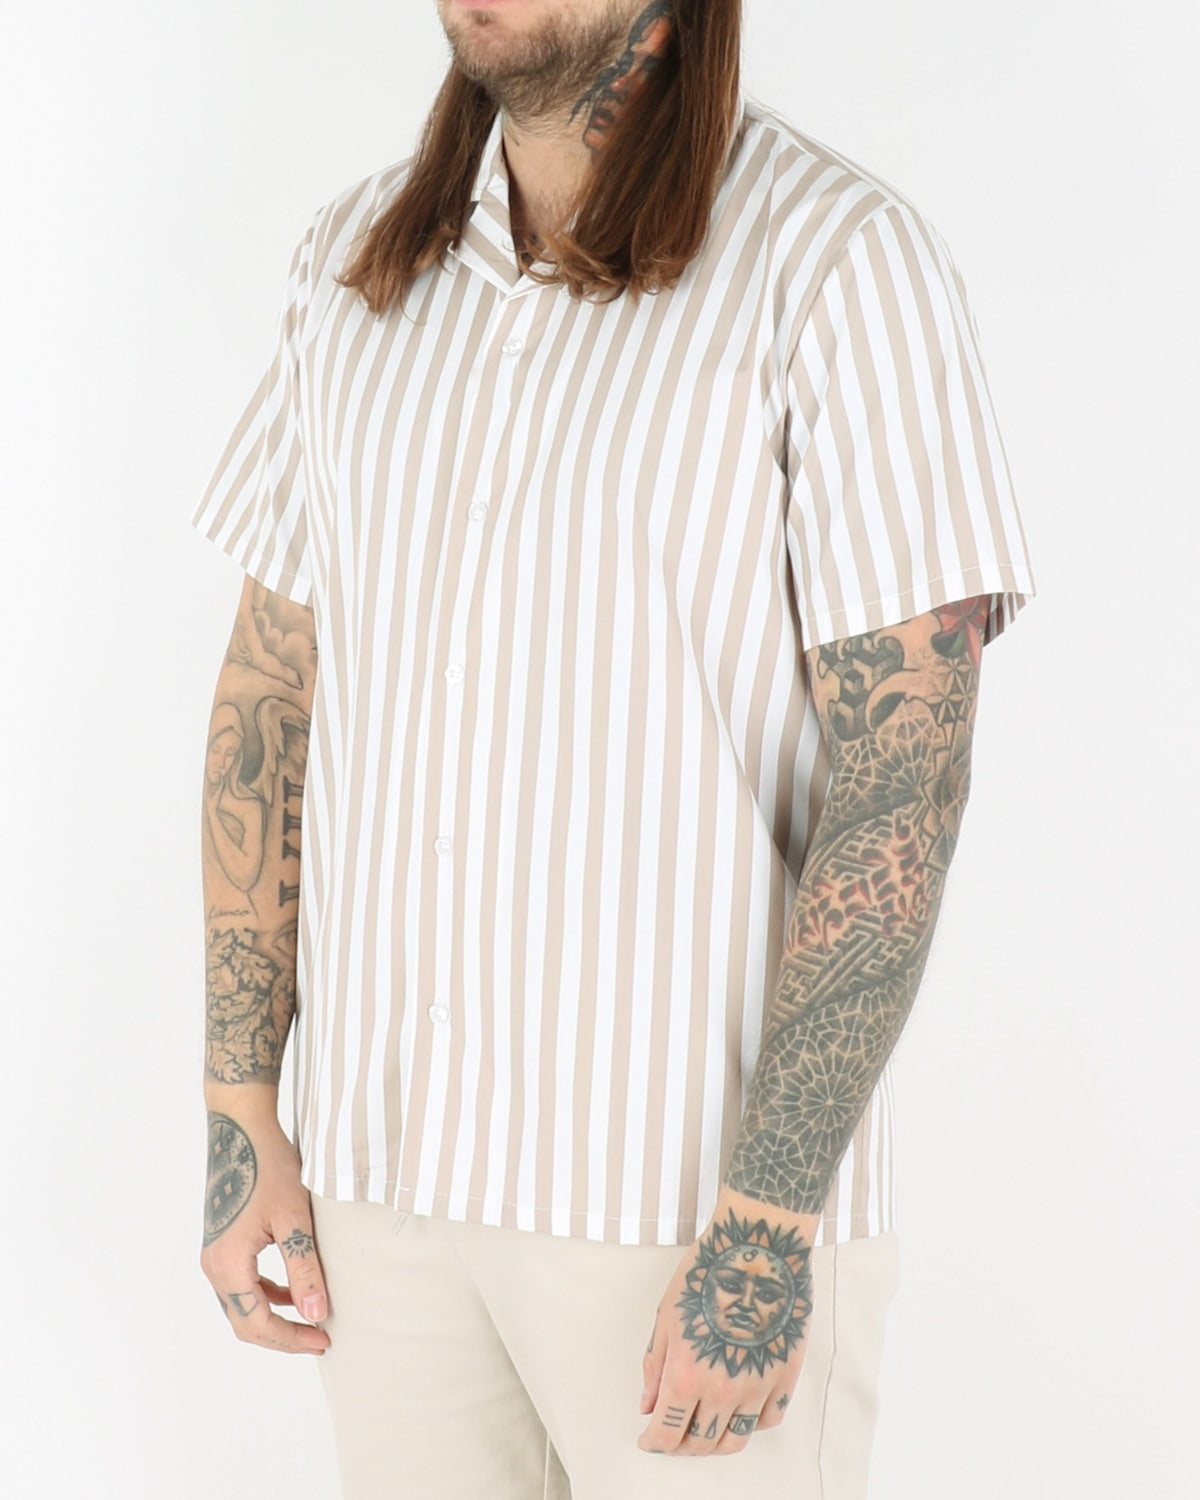 legends_clark shirt_sand stripe_2_3